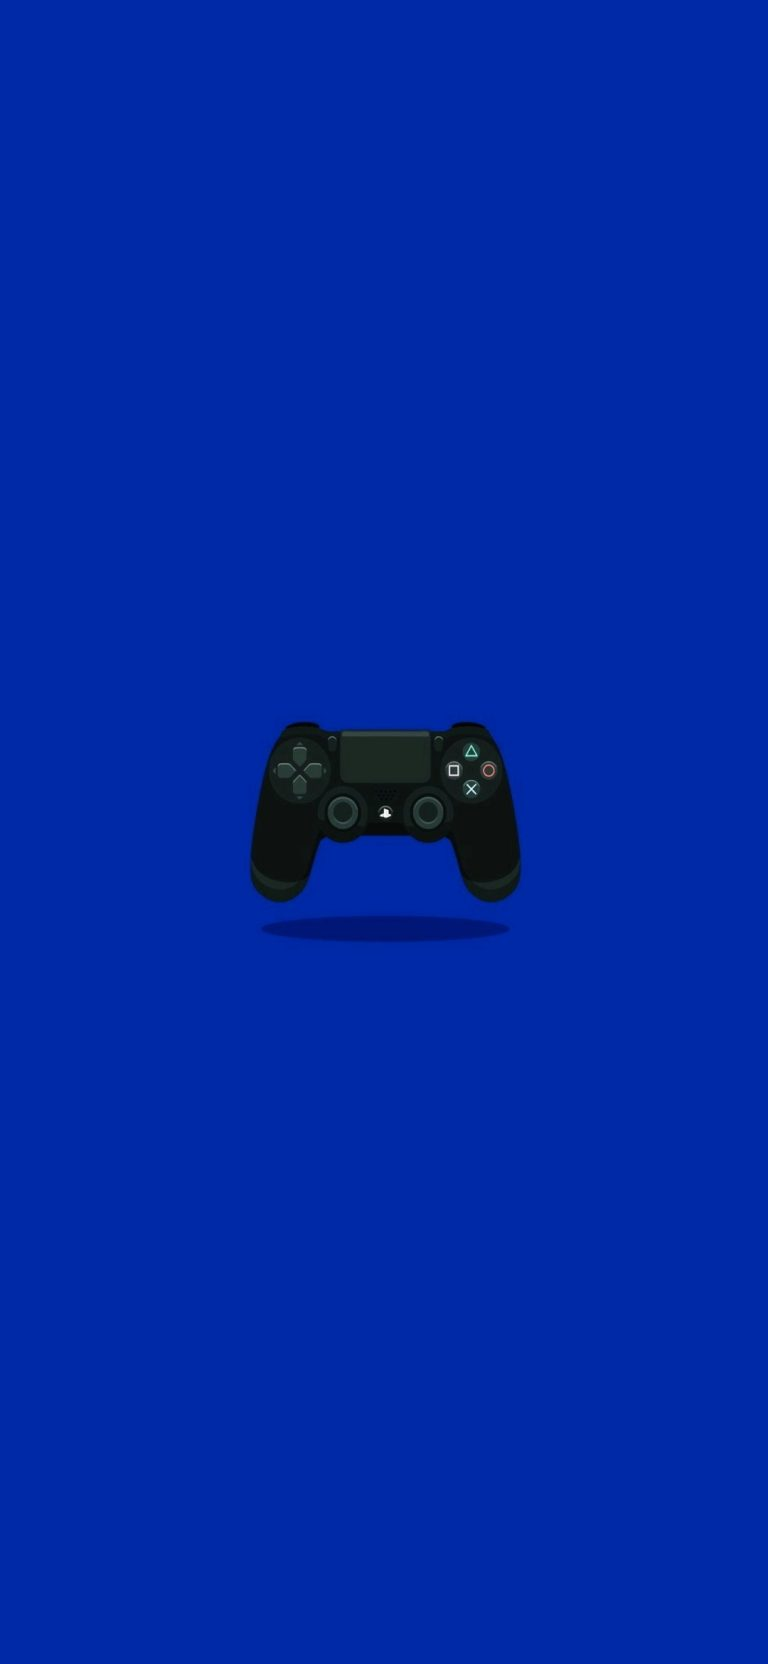 Game Controller Realme 1080X2340 Wallpapers Download Free